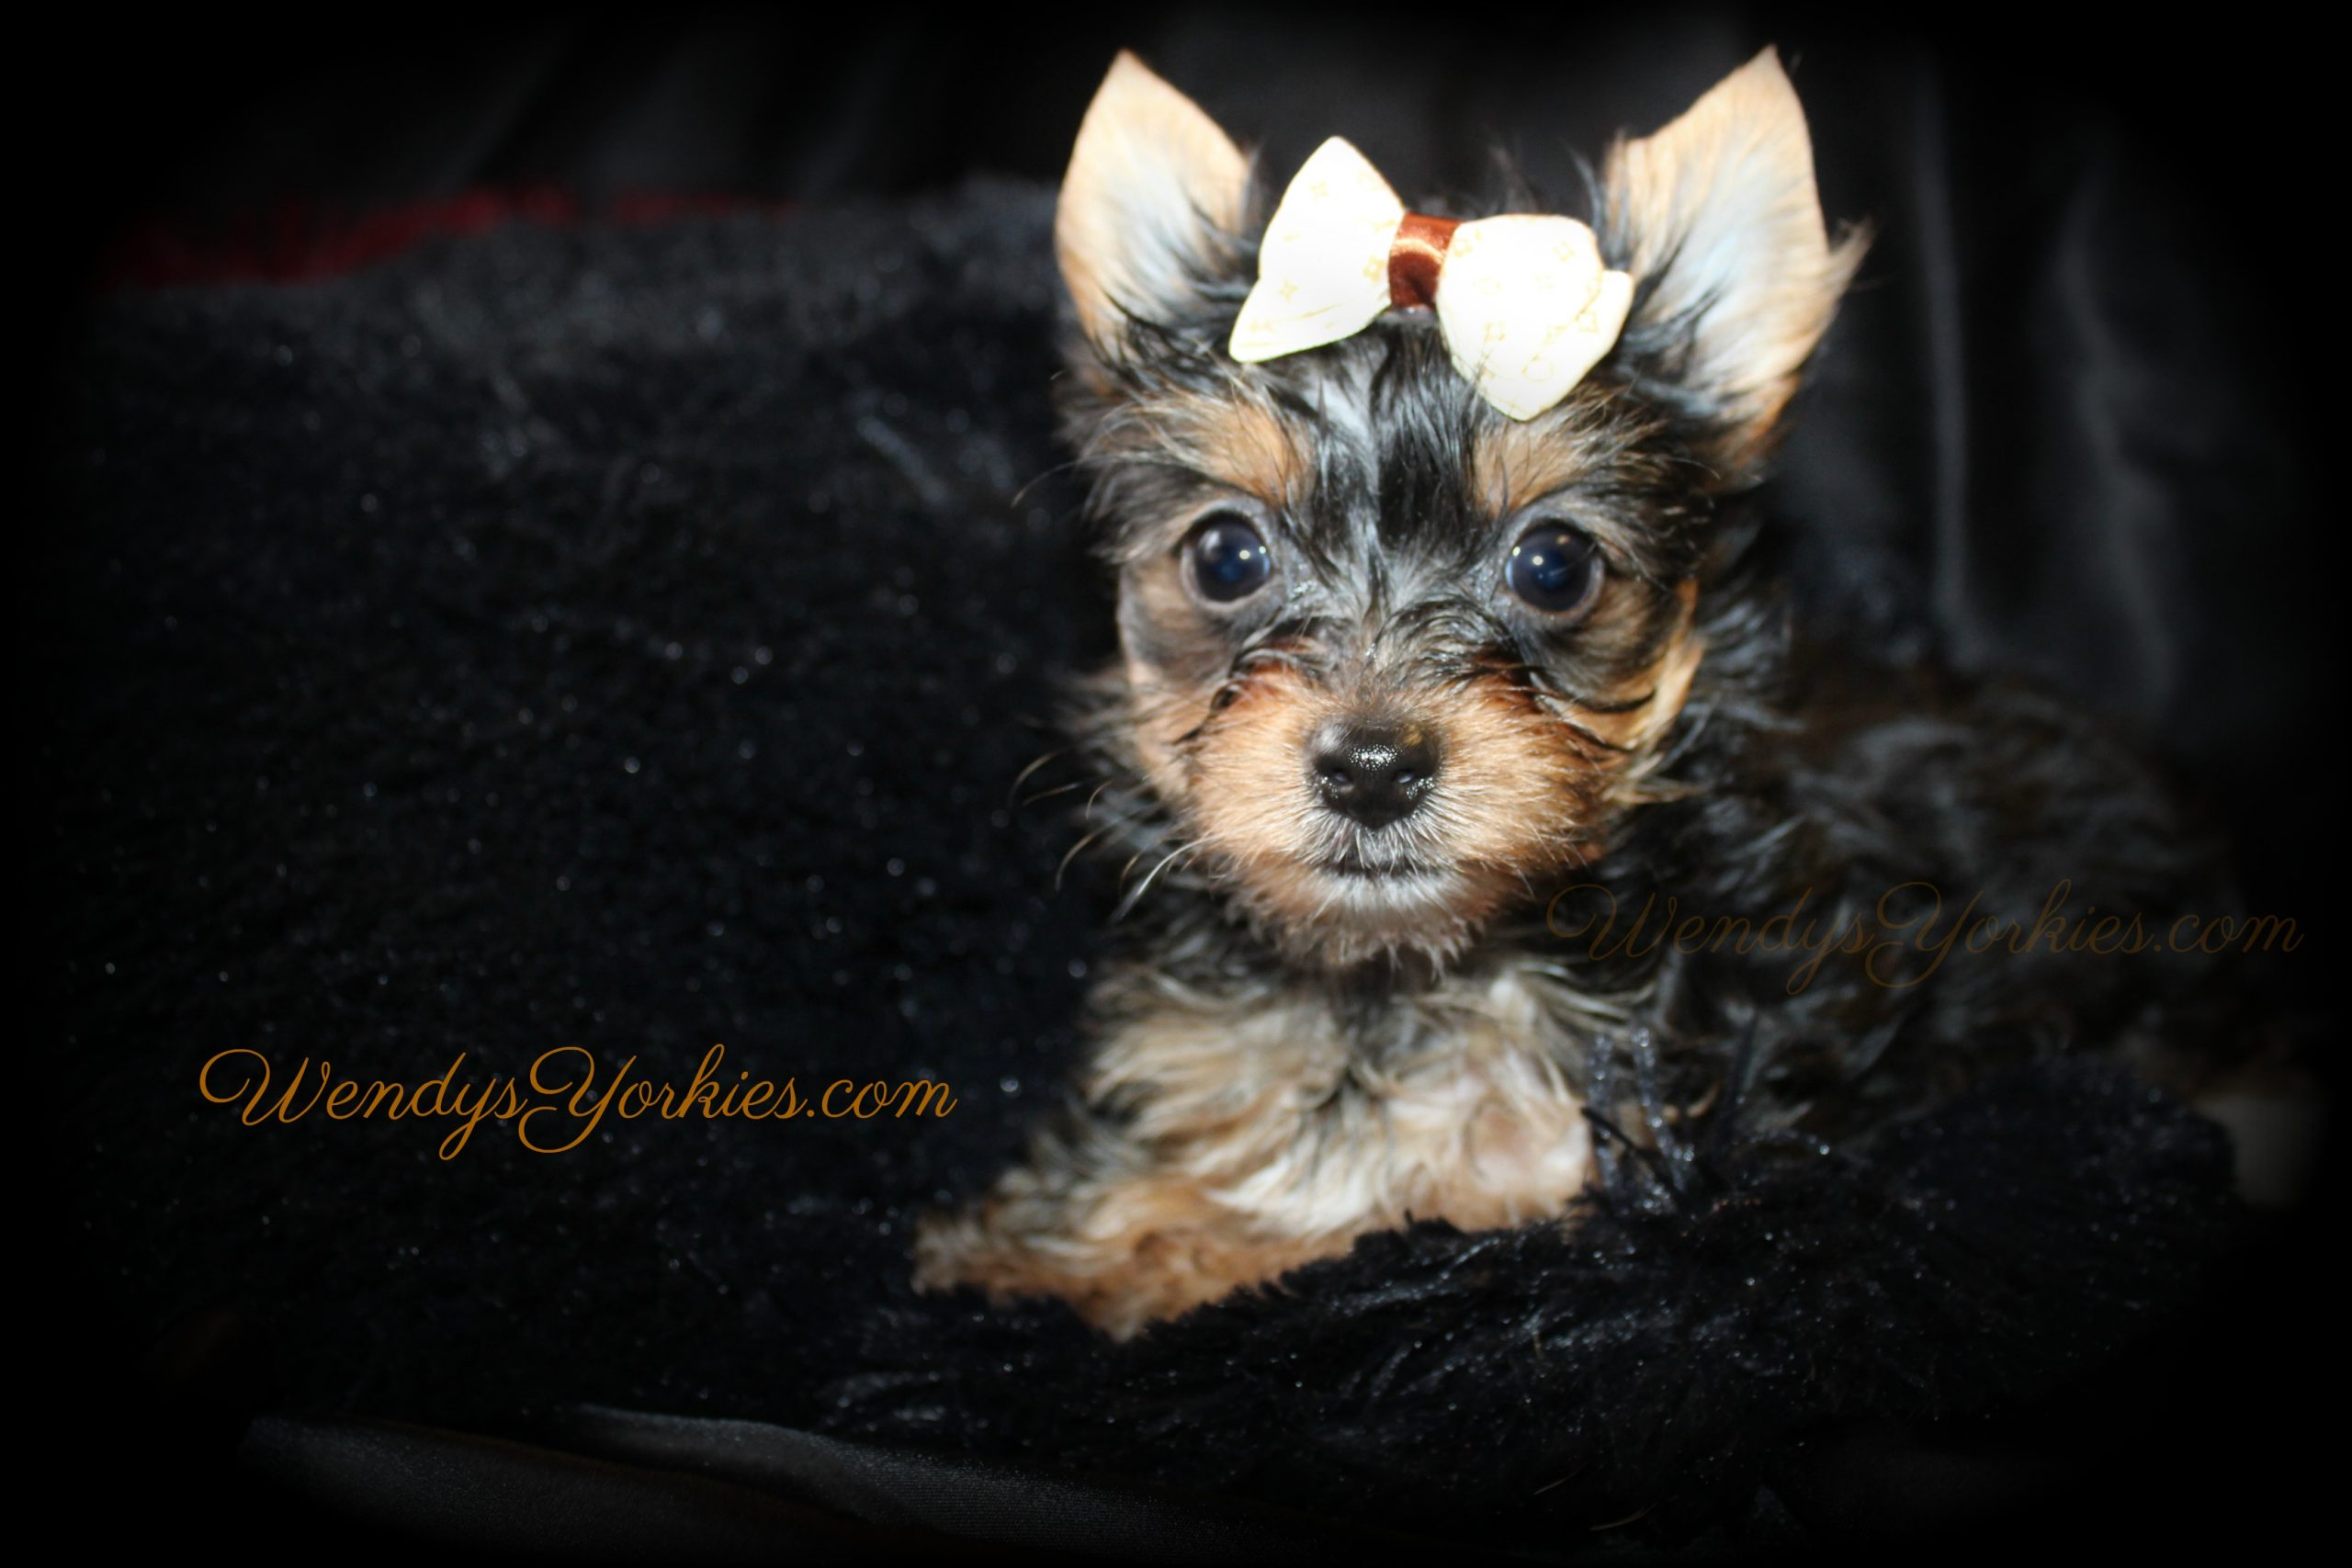 TEacup Male yOrkie puppy for sale, Anna m2, WendysYorkies.com